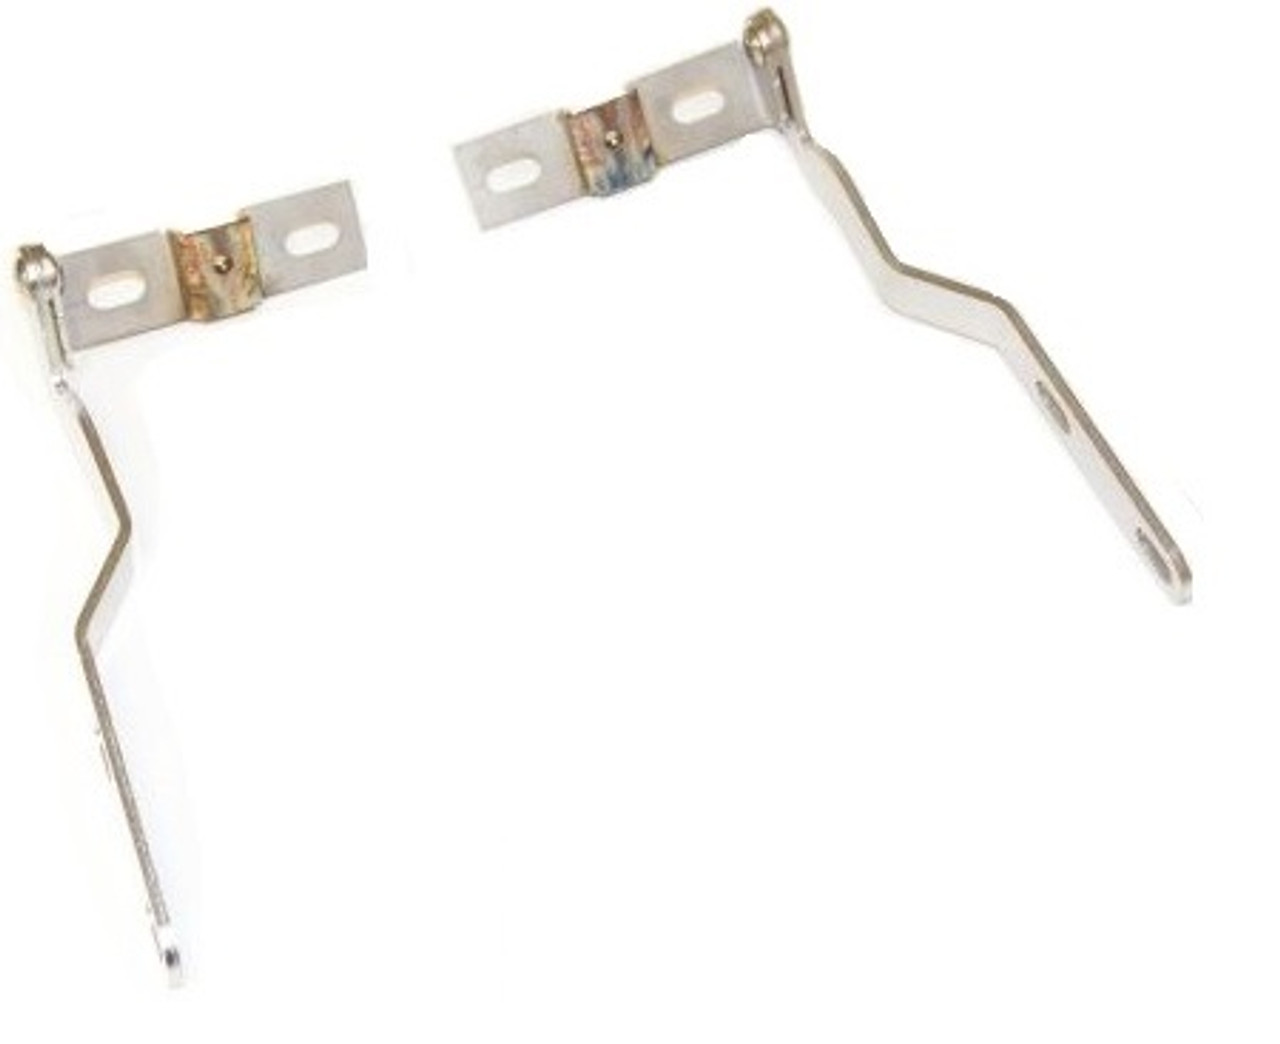 18. LOUVRE HINGE KIT STAINLESS